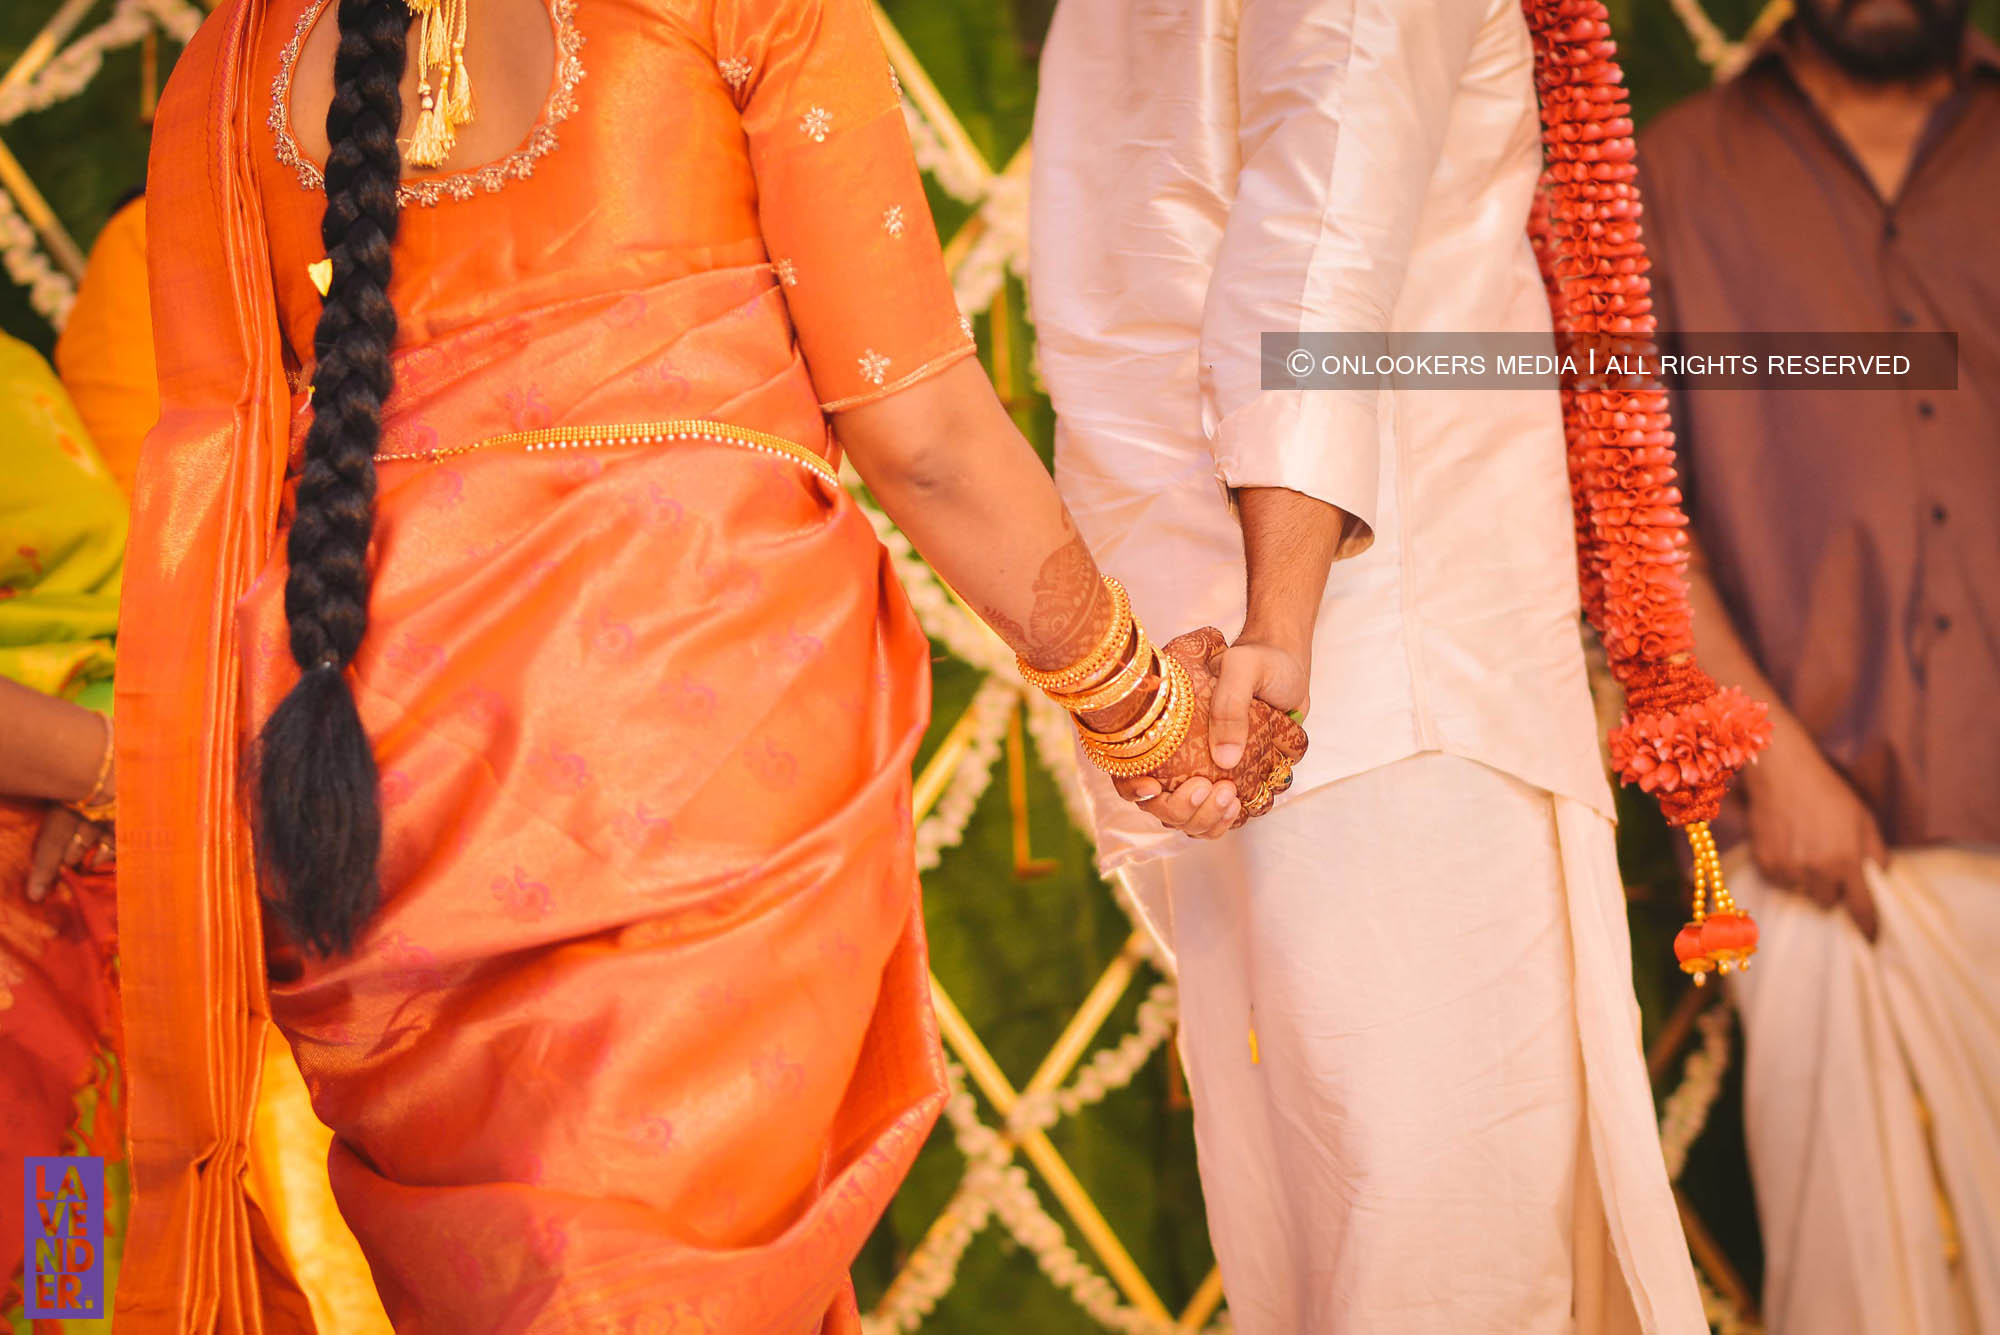 http://onlookersmedia.in/wp-content/uploads/2018/05/sreejith-vijay-wedding-stills-images-64.jpg